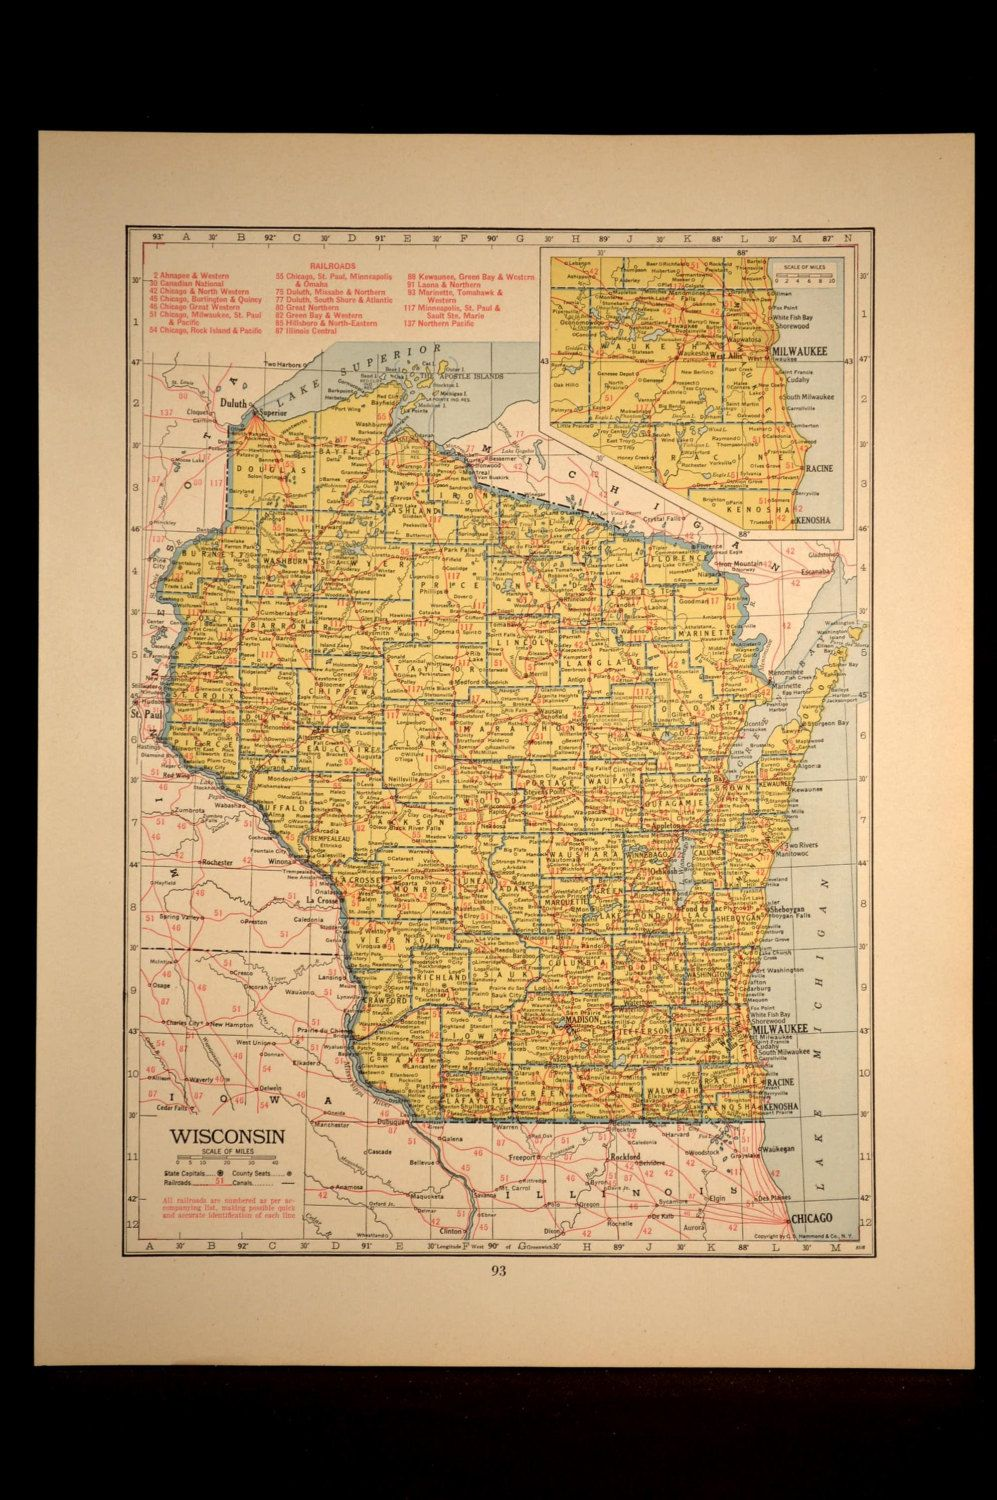 Wisconsin Map of Wisconsin Wall Decor Art Railroad Vintage Old 1940s on